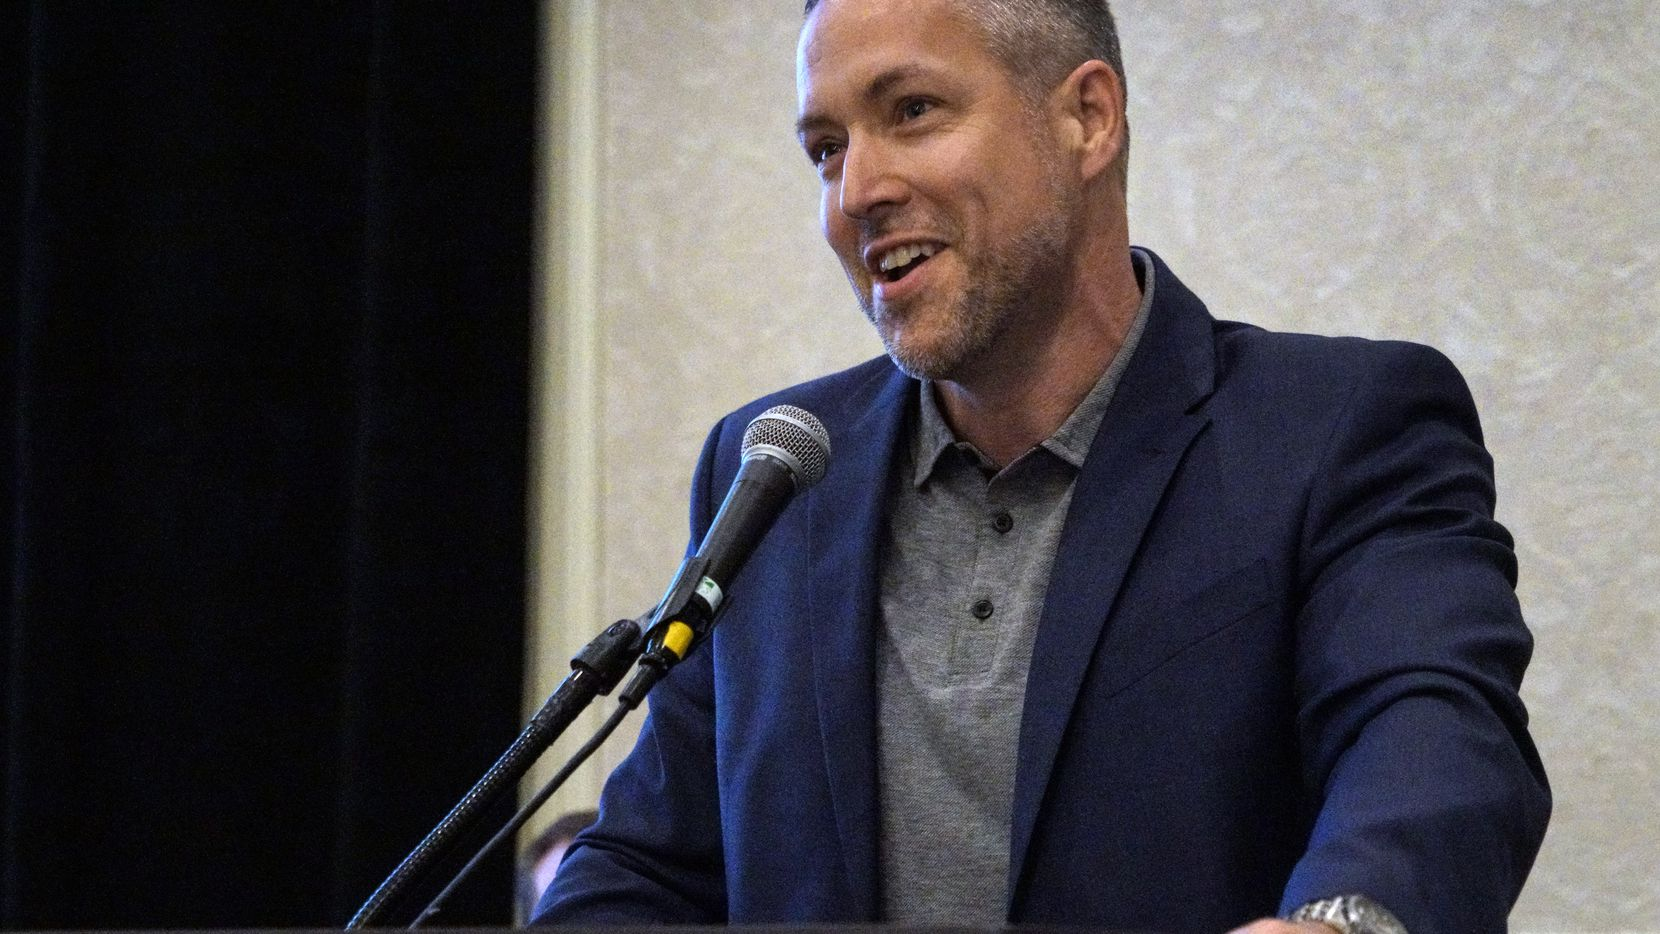 J.D. Greear, photographed Sunday at the Southern Baptist Convention's annual meeting in Dallas, has been elected president of the denomination.